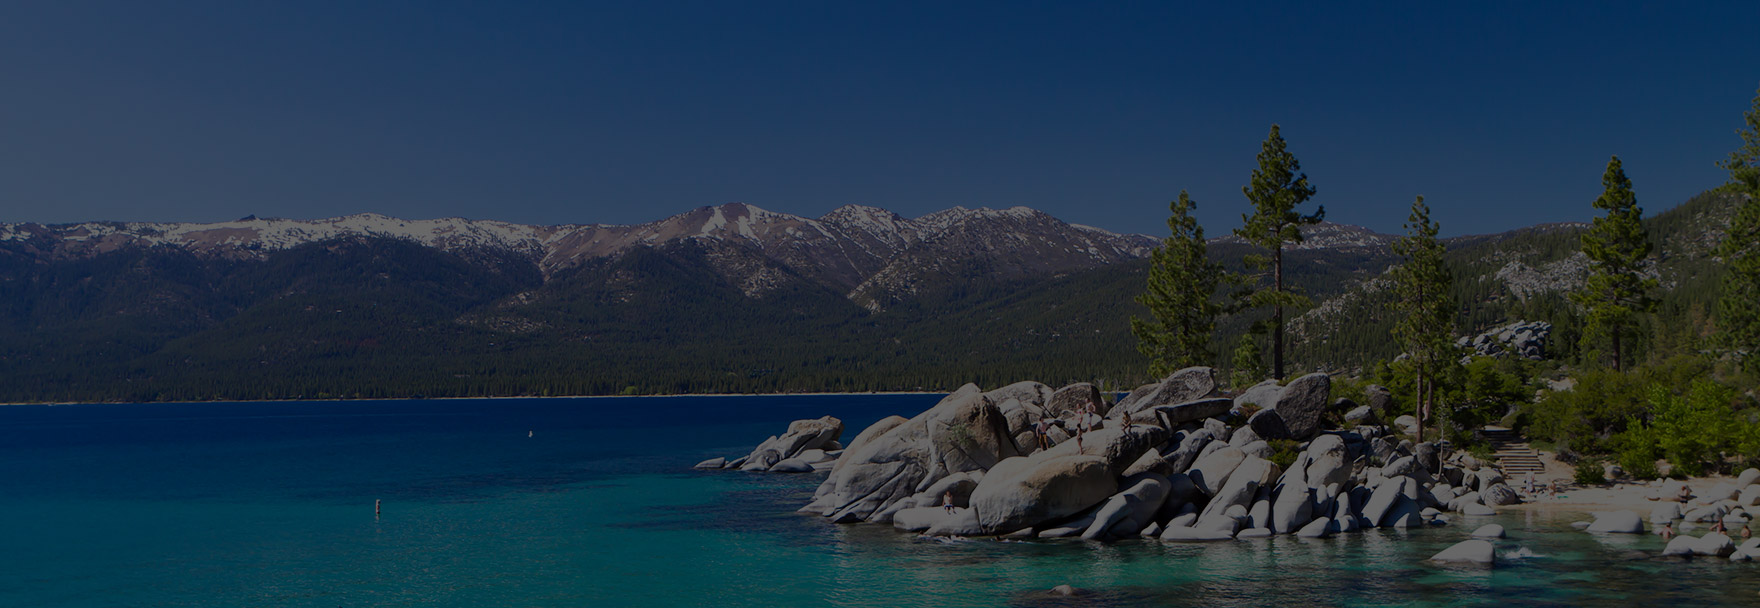 Lake Tahoe Vacation Packages (LTE) - Southwest Vacations